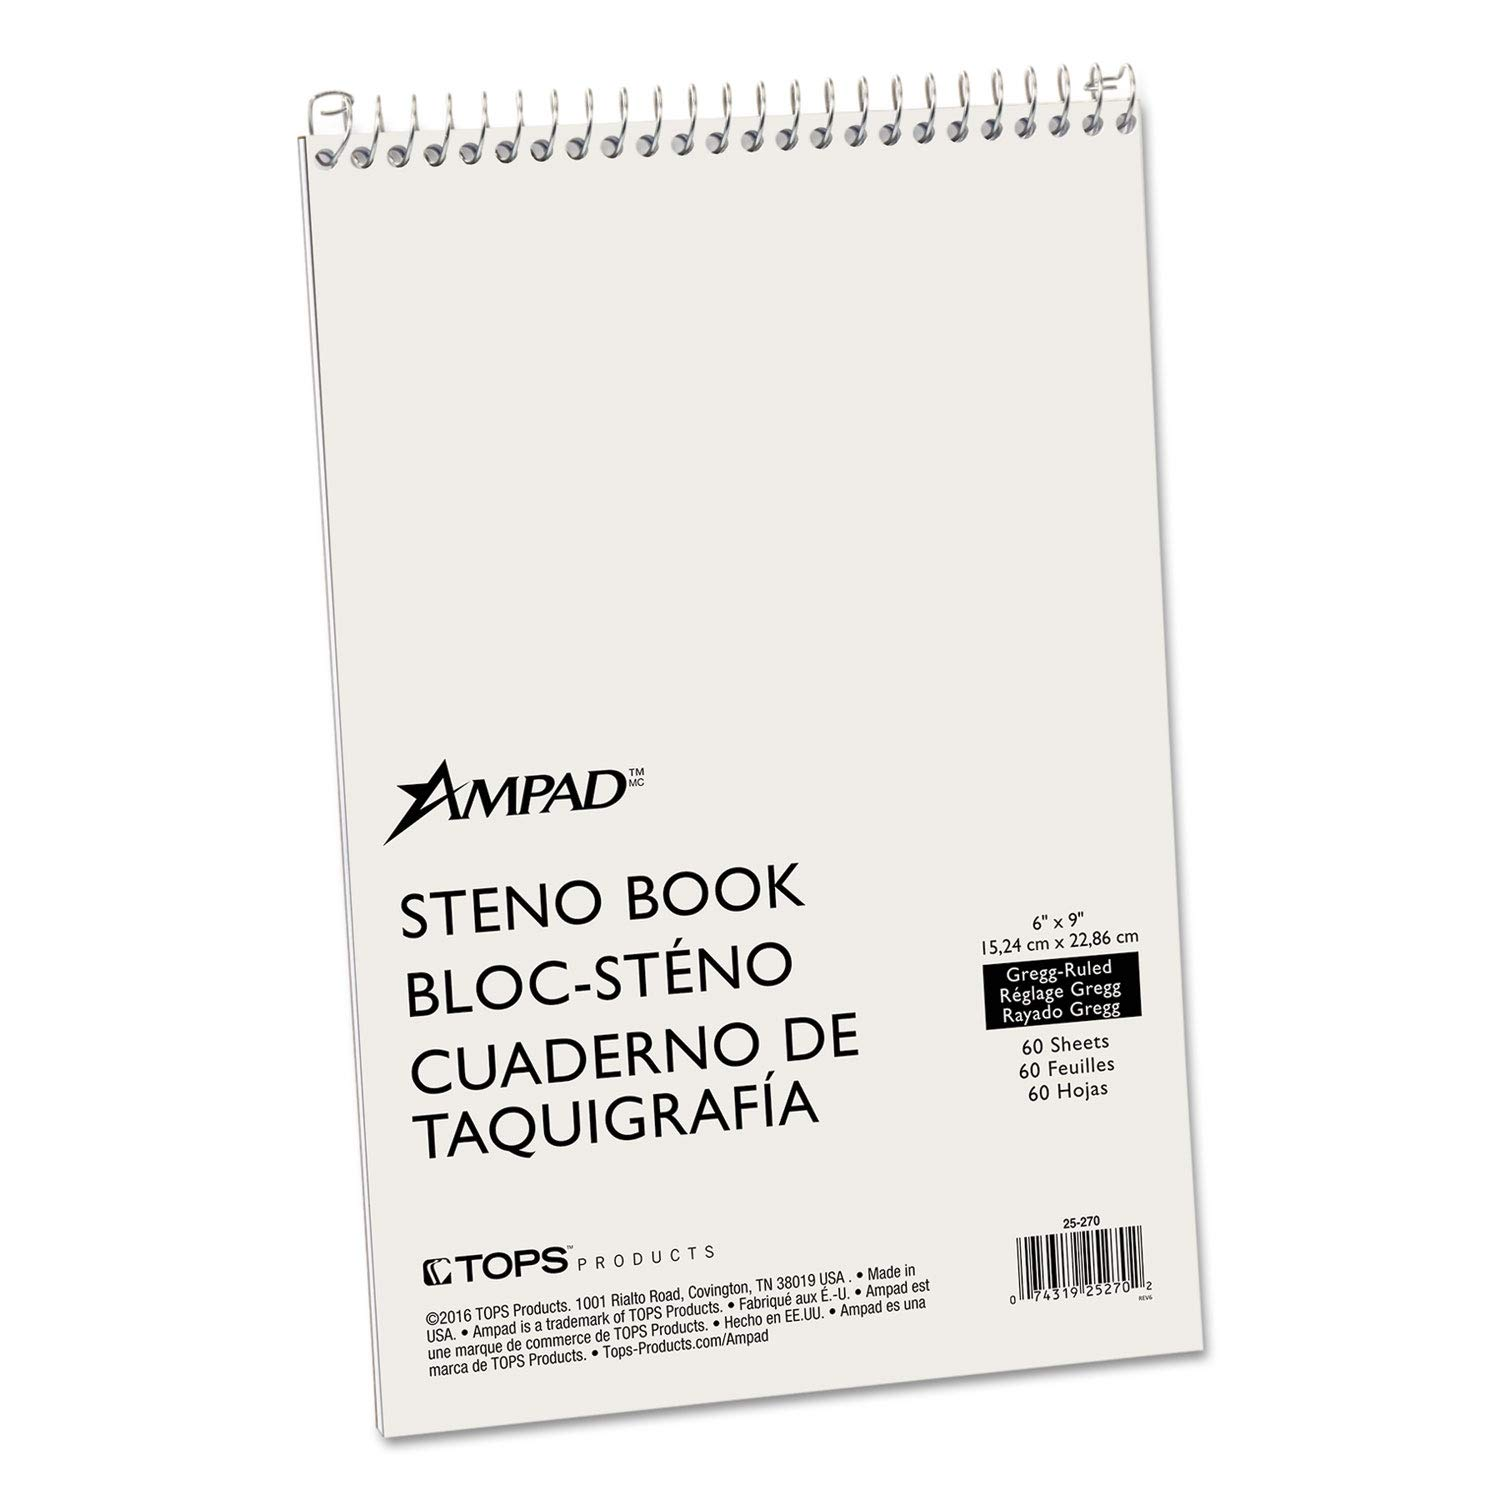 Ampad Spiral Steno Book, Gregg, 6 x 9, 15 lb, Green Tint, 60 Sheets - 25-270 (Pack of 10)